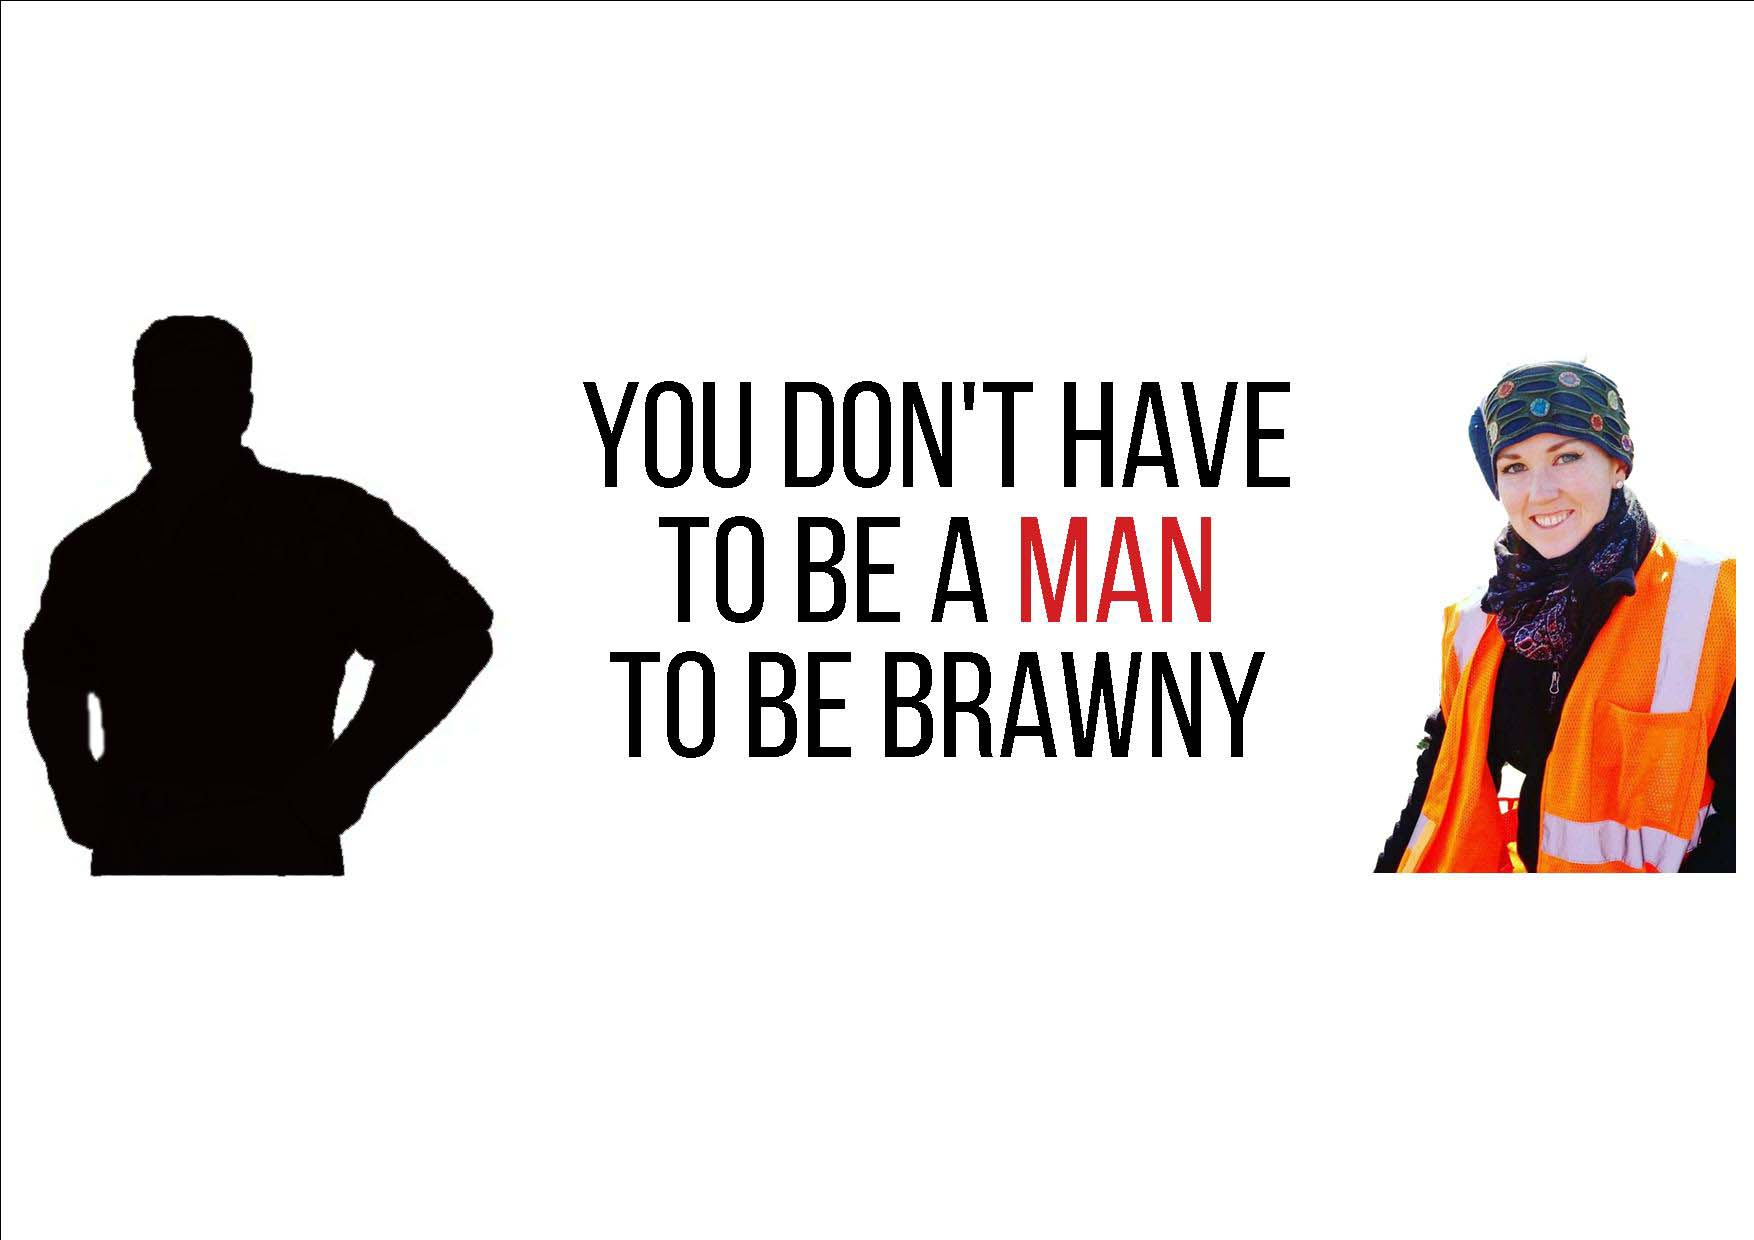 A Woman in a Brawny Man's World